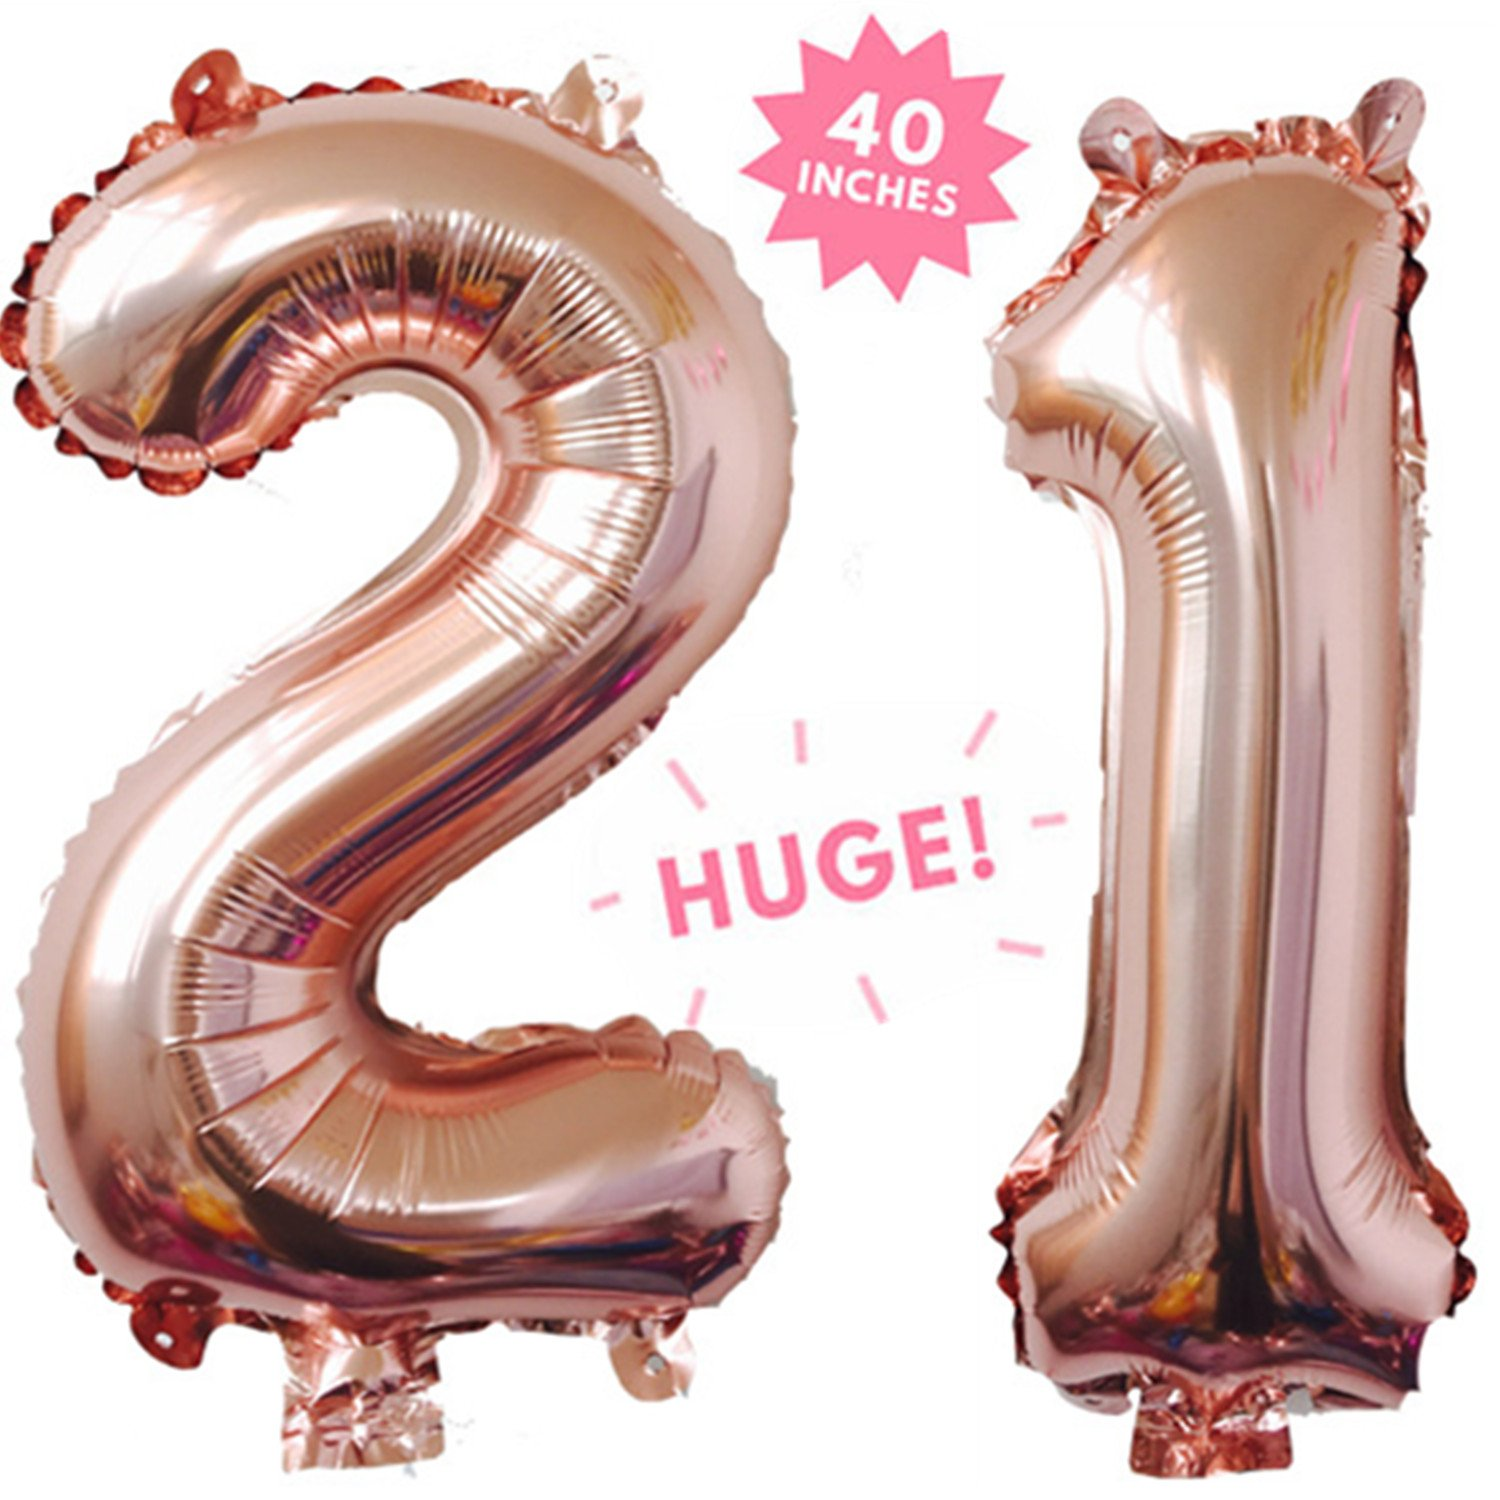 40 Inch Rose Gold Jumbo Digital 21 Number Balloons Huge Giant Balloons Foil Mylar Number Balloons For Birthday Party,Wedding, Bridal Shower Engagement Photo Shoot, Anniversary ,21 by Rose&Wood (Image #1)